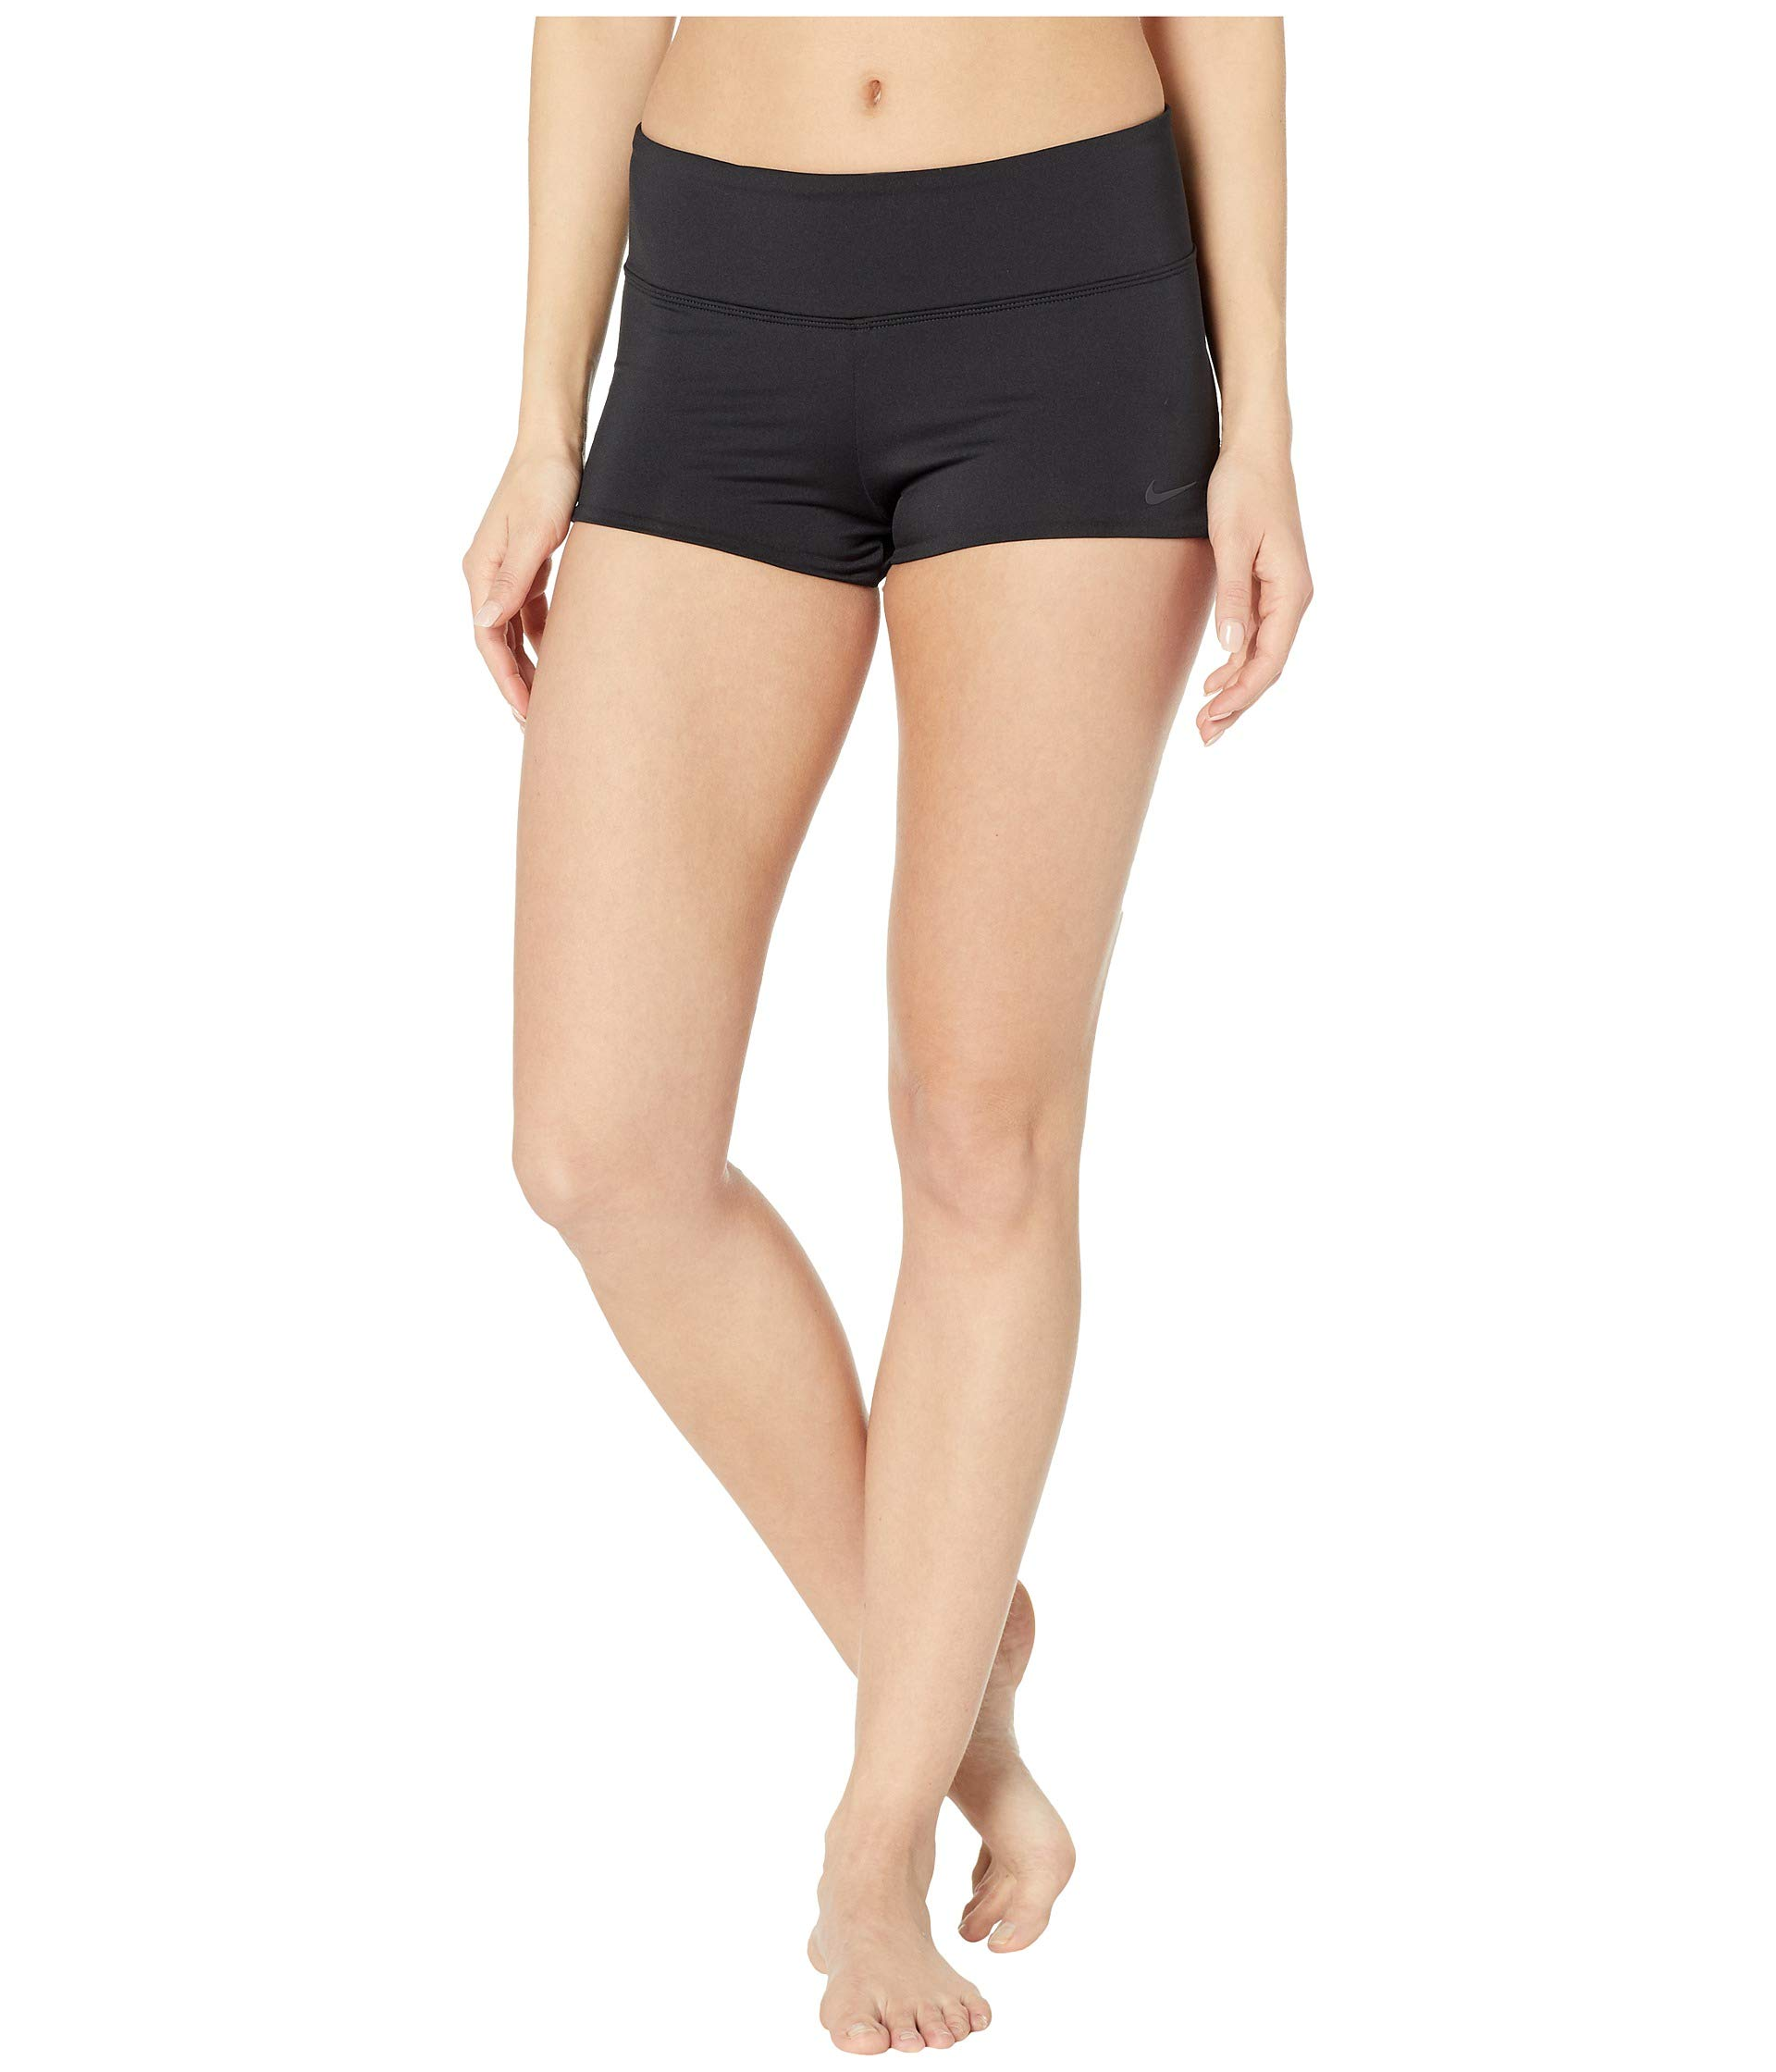 Nike Women's Solid Kick Shorts Black X-Small by Nike